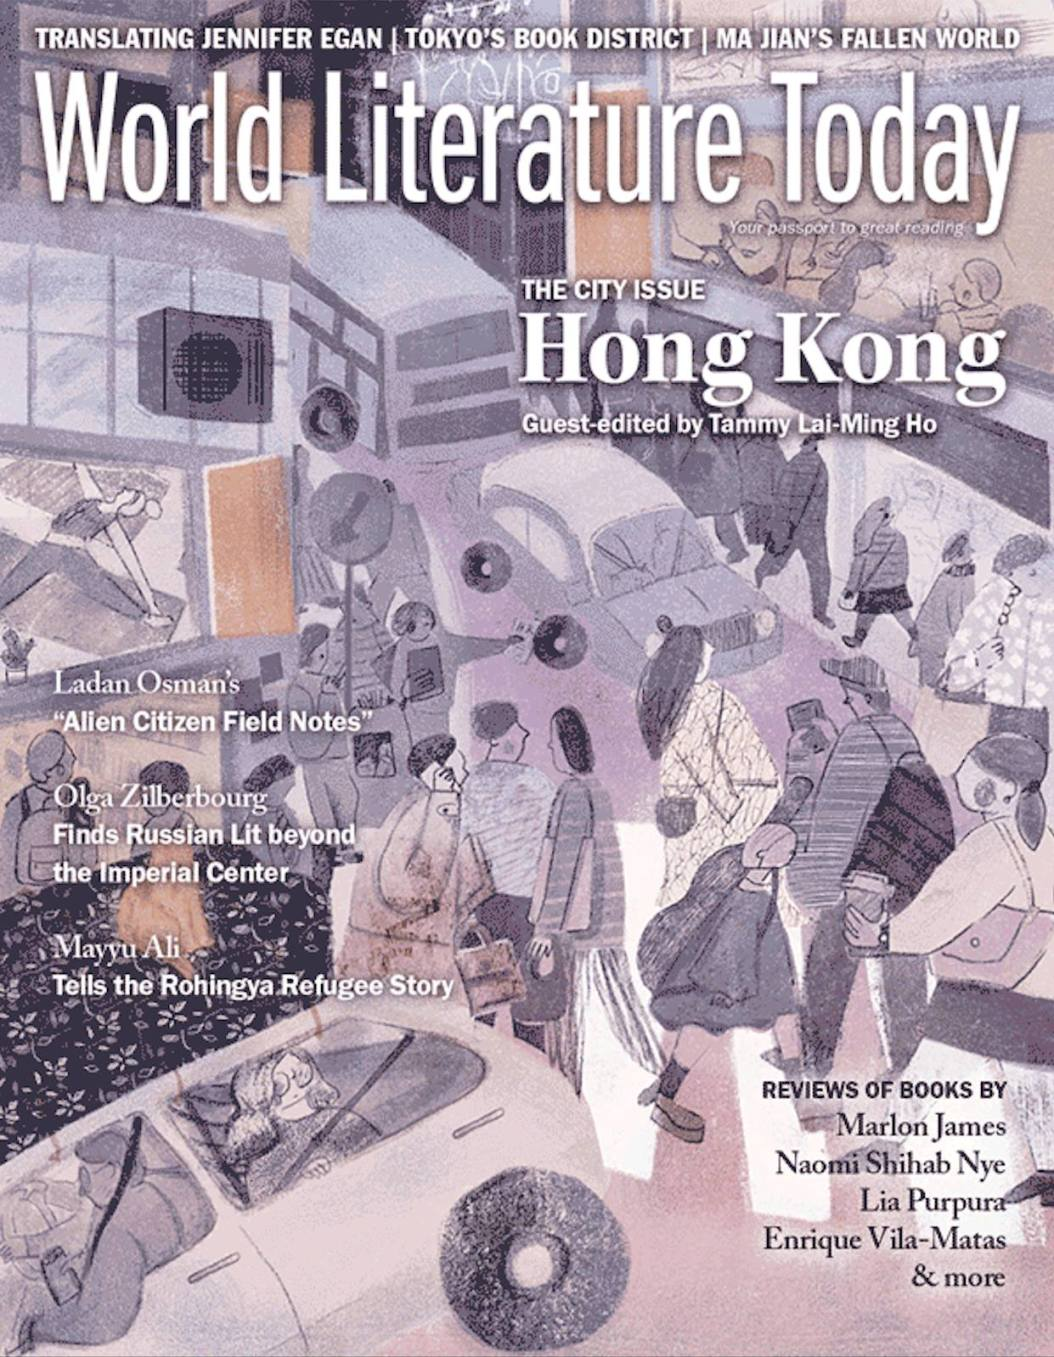 World Literature Today_HONG KONG.jpg